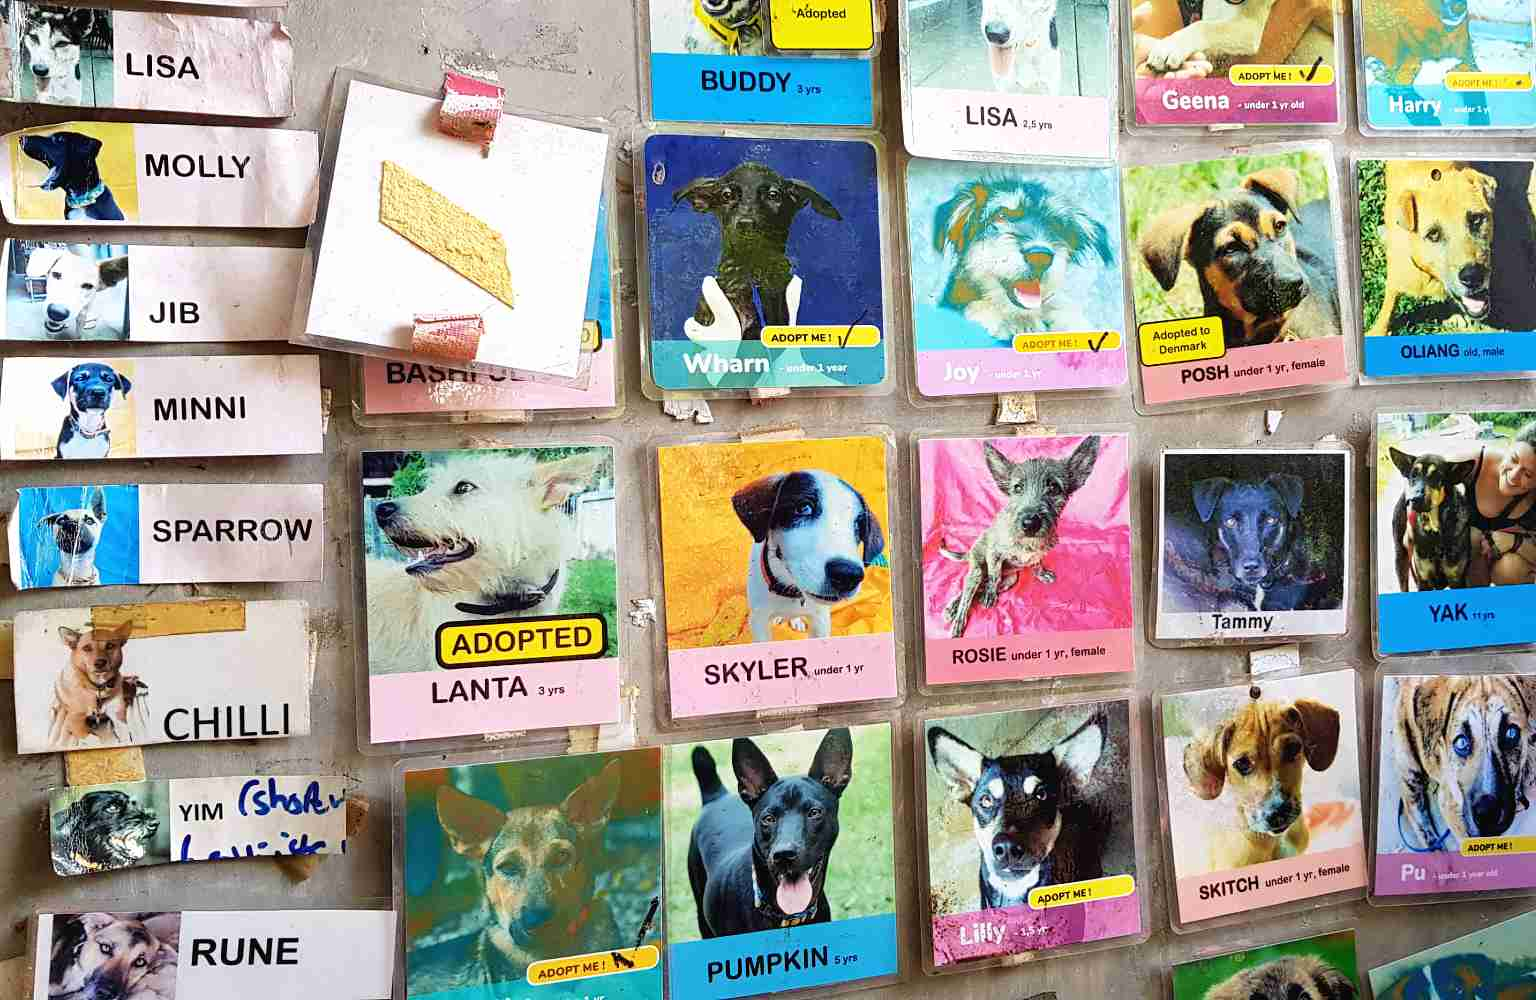 Pictures of dogs with their personal story in Lanta Animal Welfare